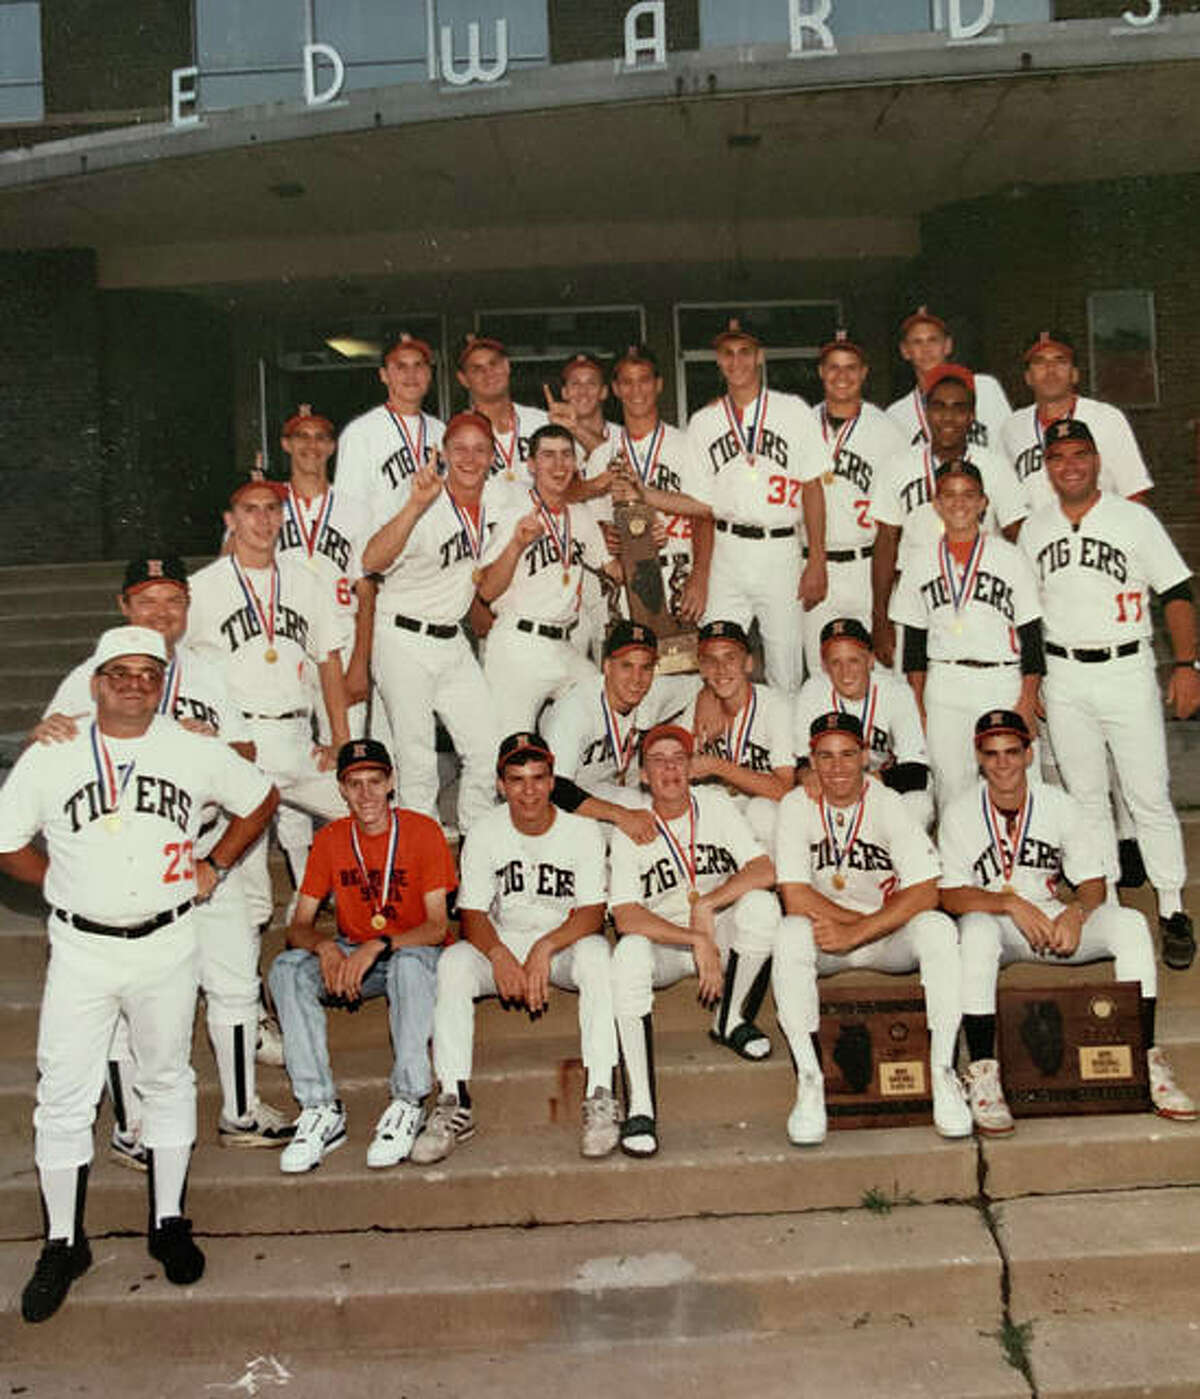 The 1990 Edwardsville baseball team poses with the Class AA state championship trophy on the steps of the high school.